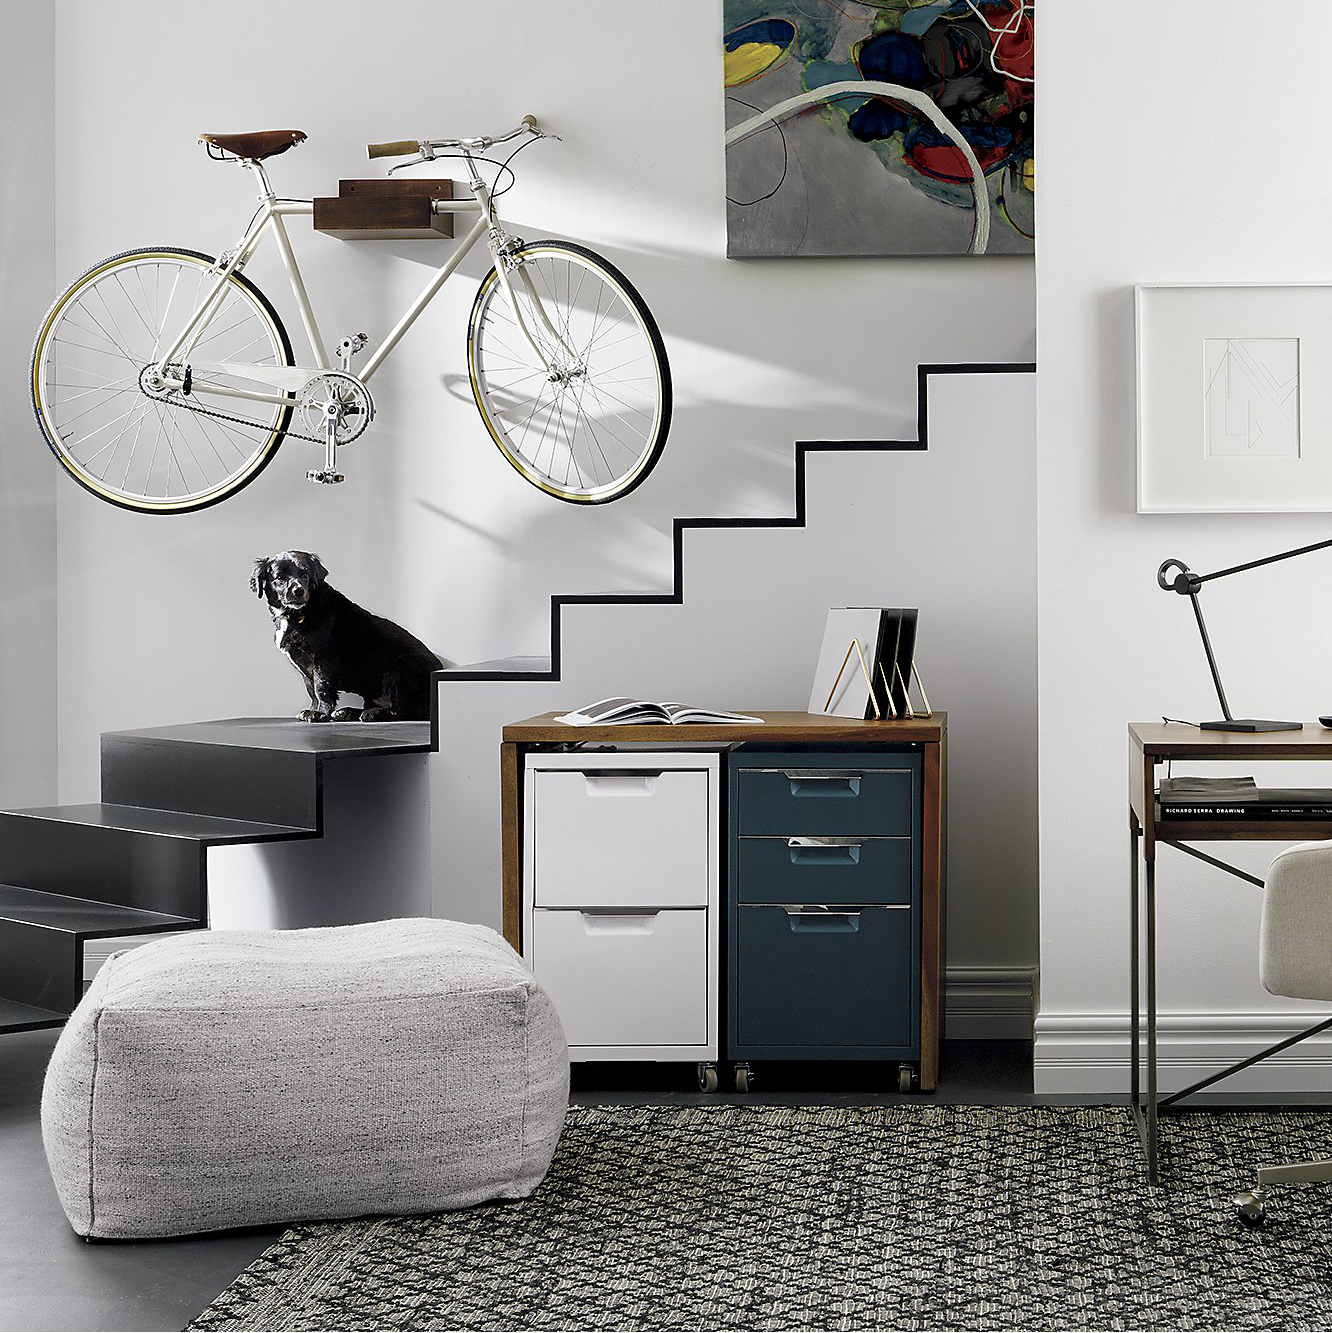 Apartment Solutions: 11 Space-Saving Indoor Bike Storage Solutions